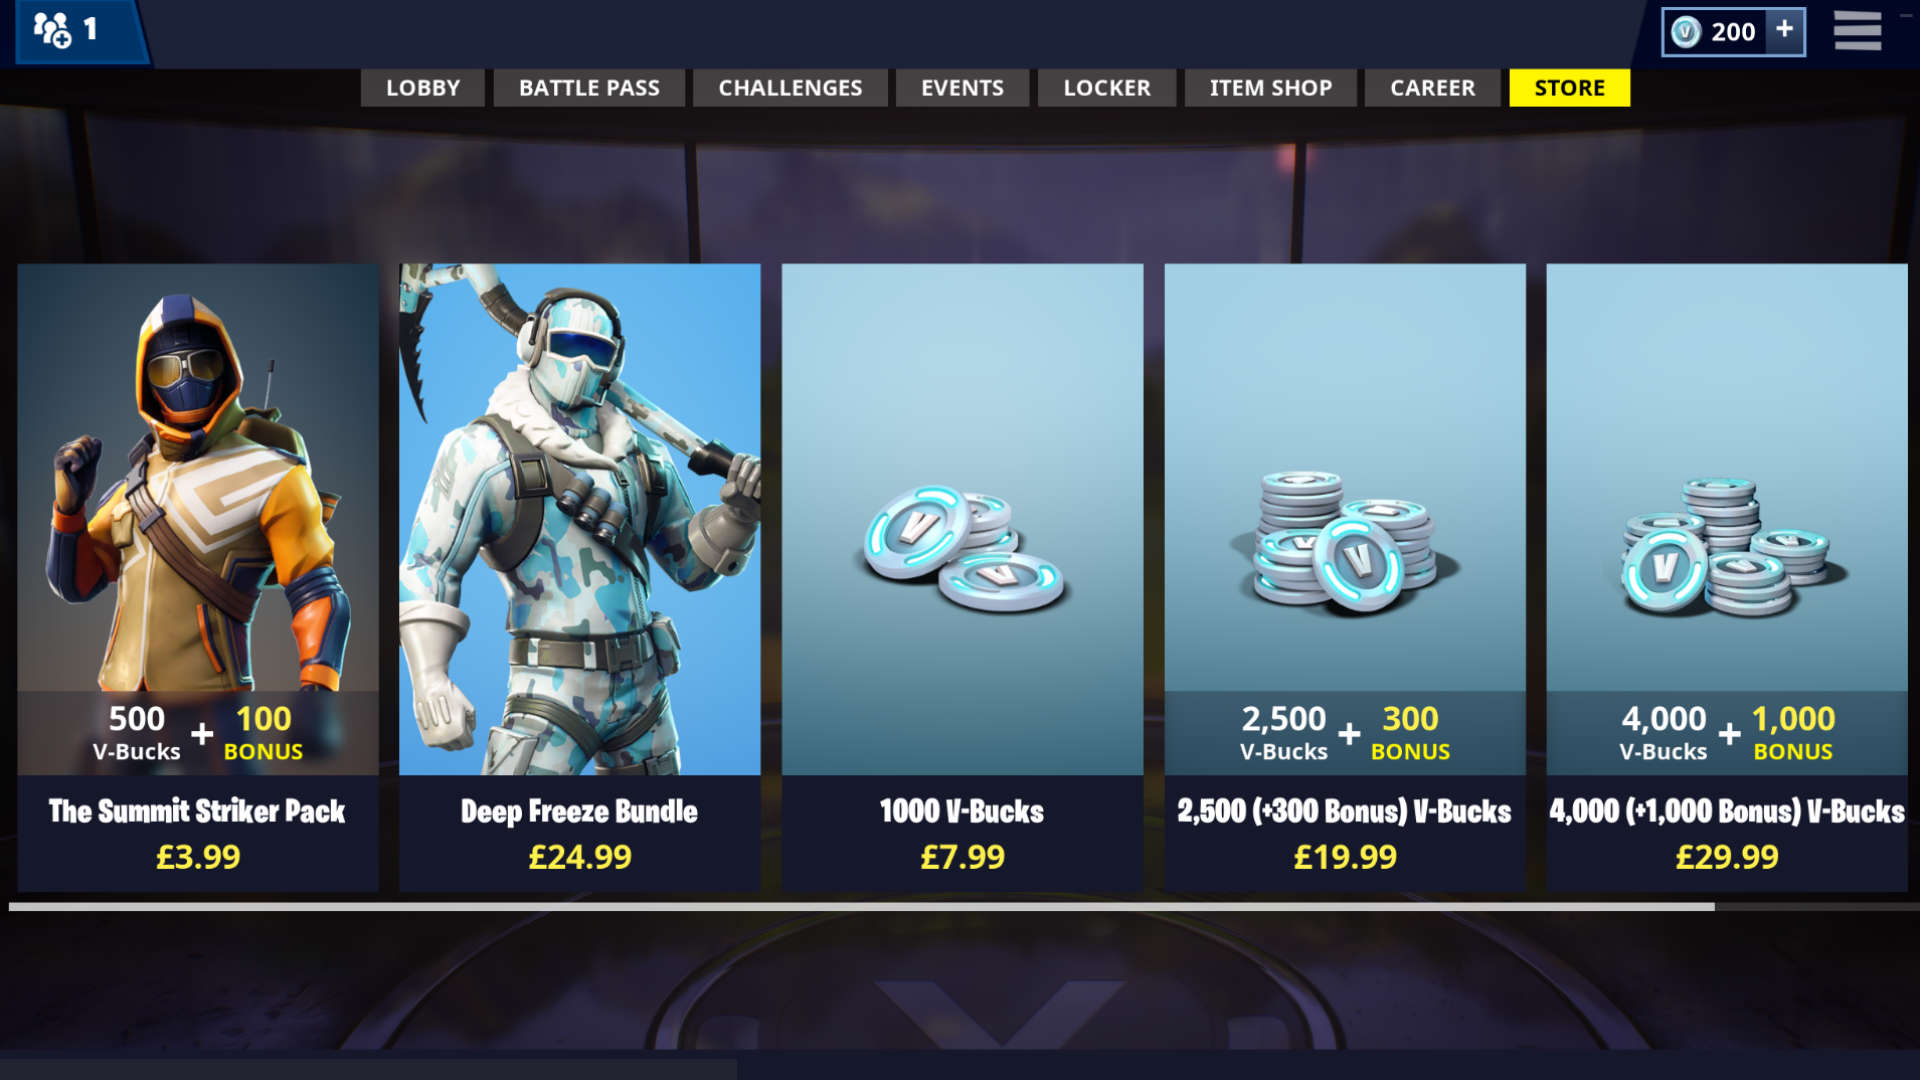 Fortnite V Bucks Cost Ps4 6 Ways To Get Free V Bucks